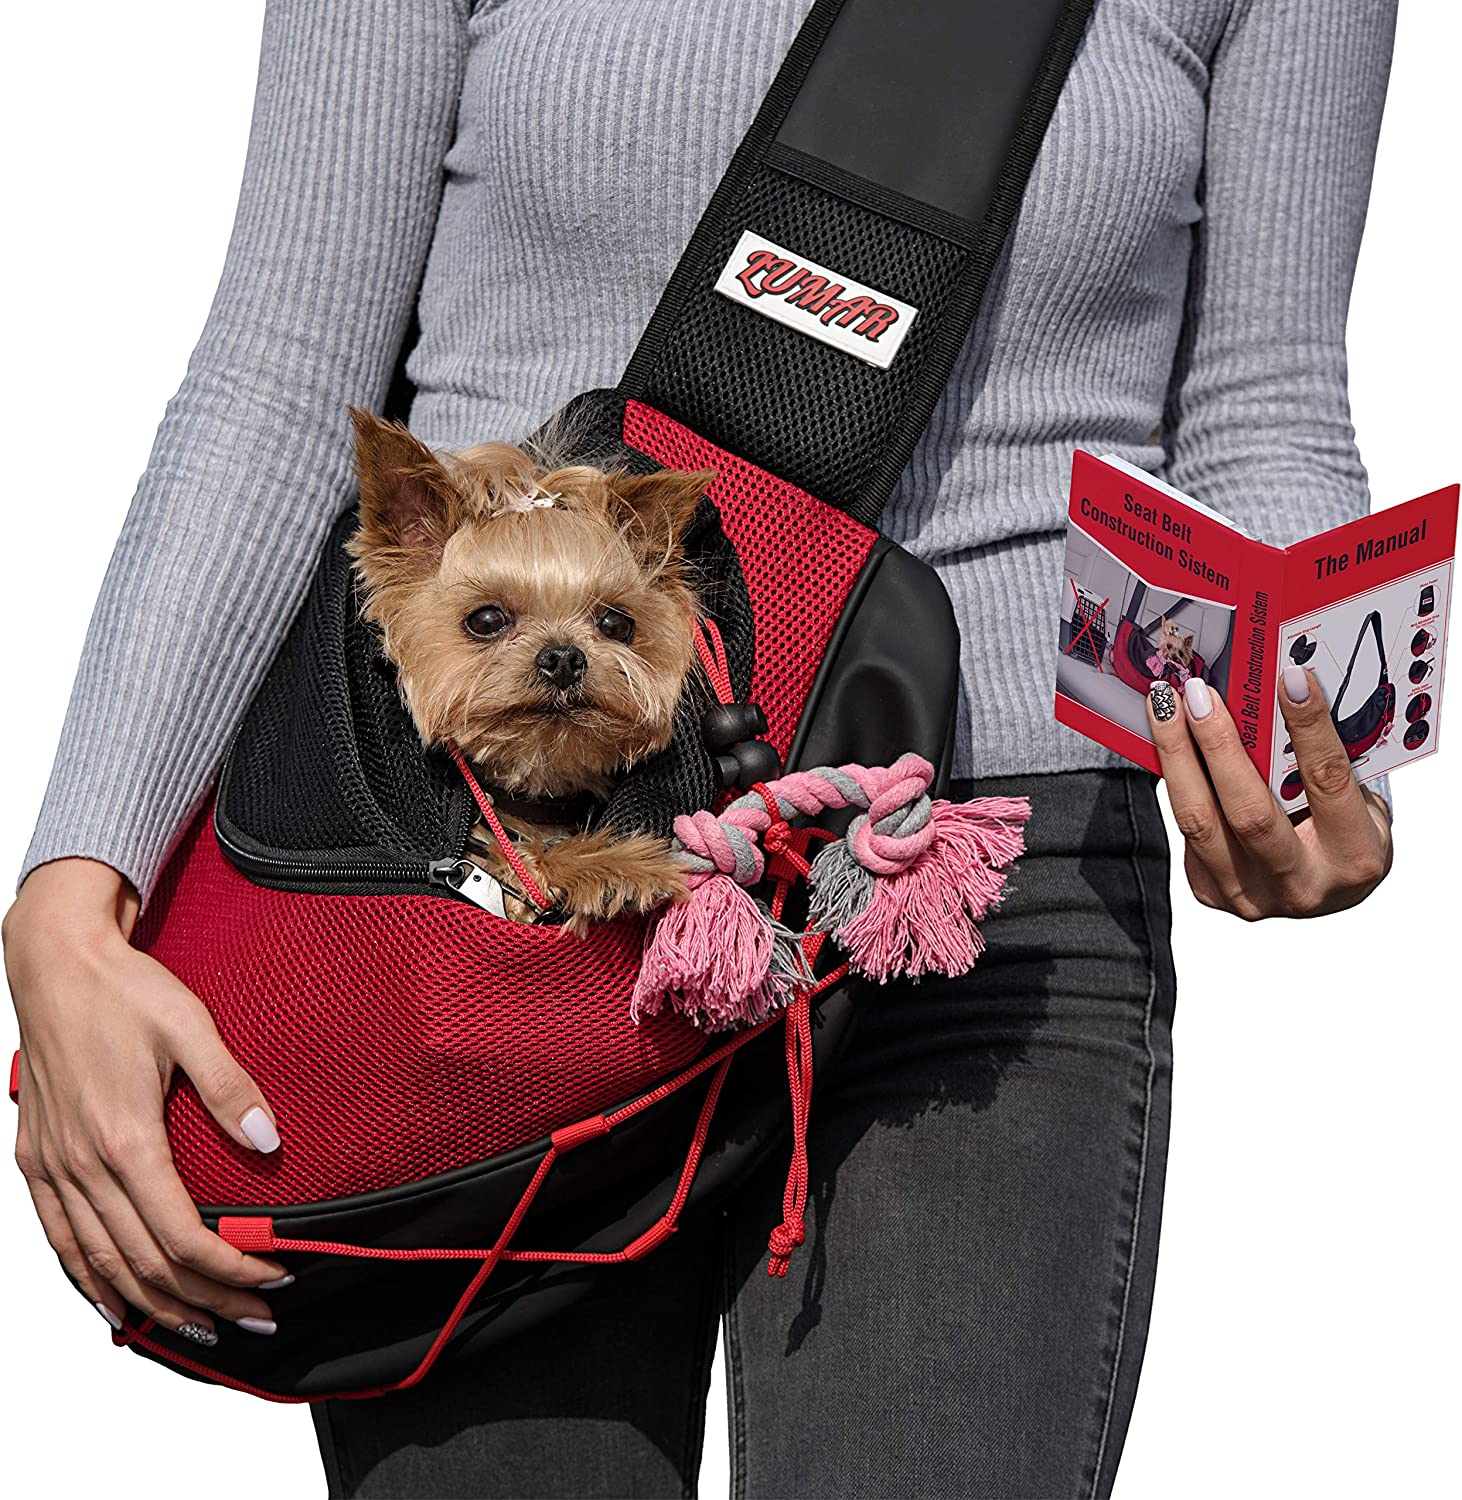 Lumar Pet Sling Carrier for Dogs and Cats Hands Free, Adjustable Size and Adaptable System for the Seatbelt Safety in the Car Toy Bonus for Traveling with the Small and Medium Dogs +9LB Without Stress